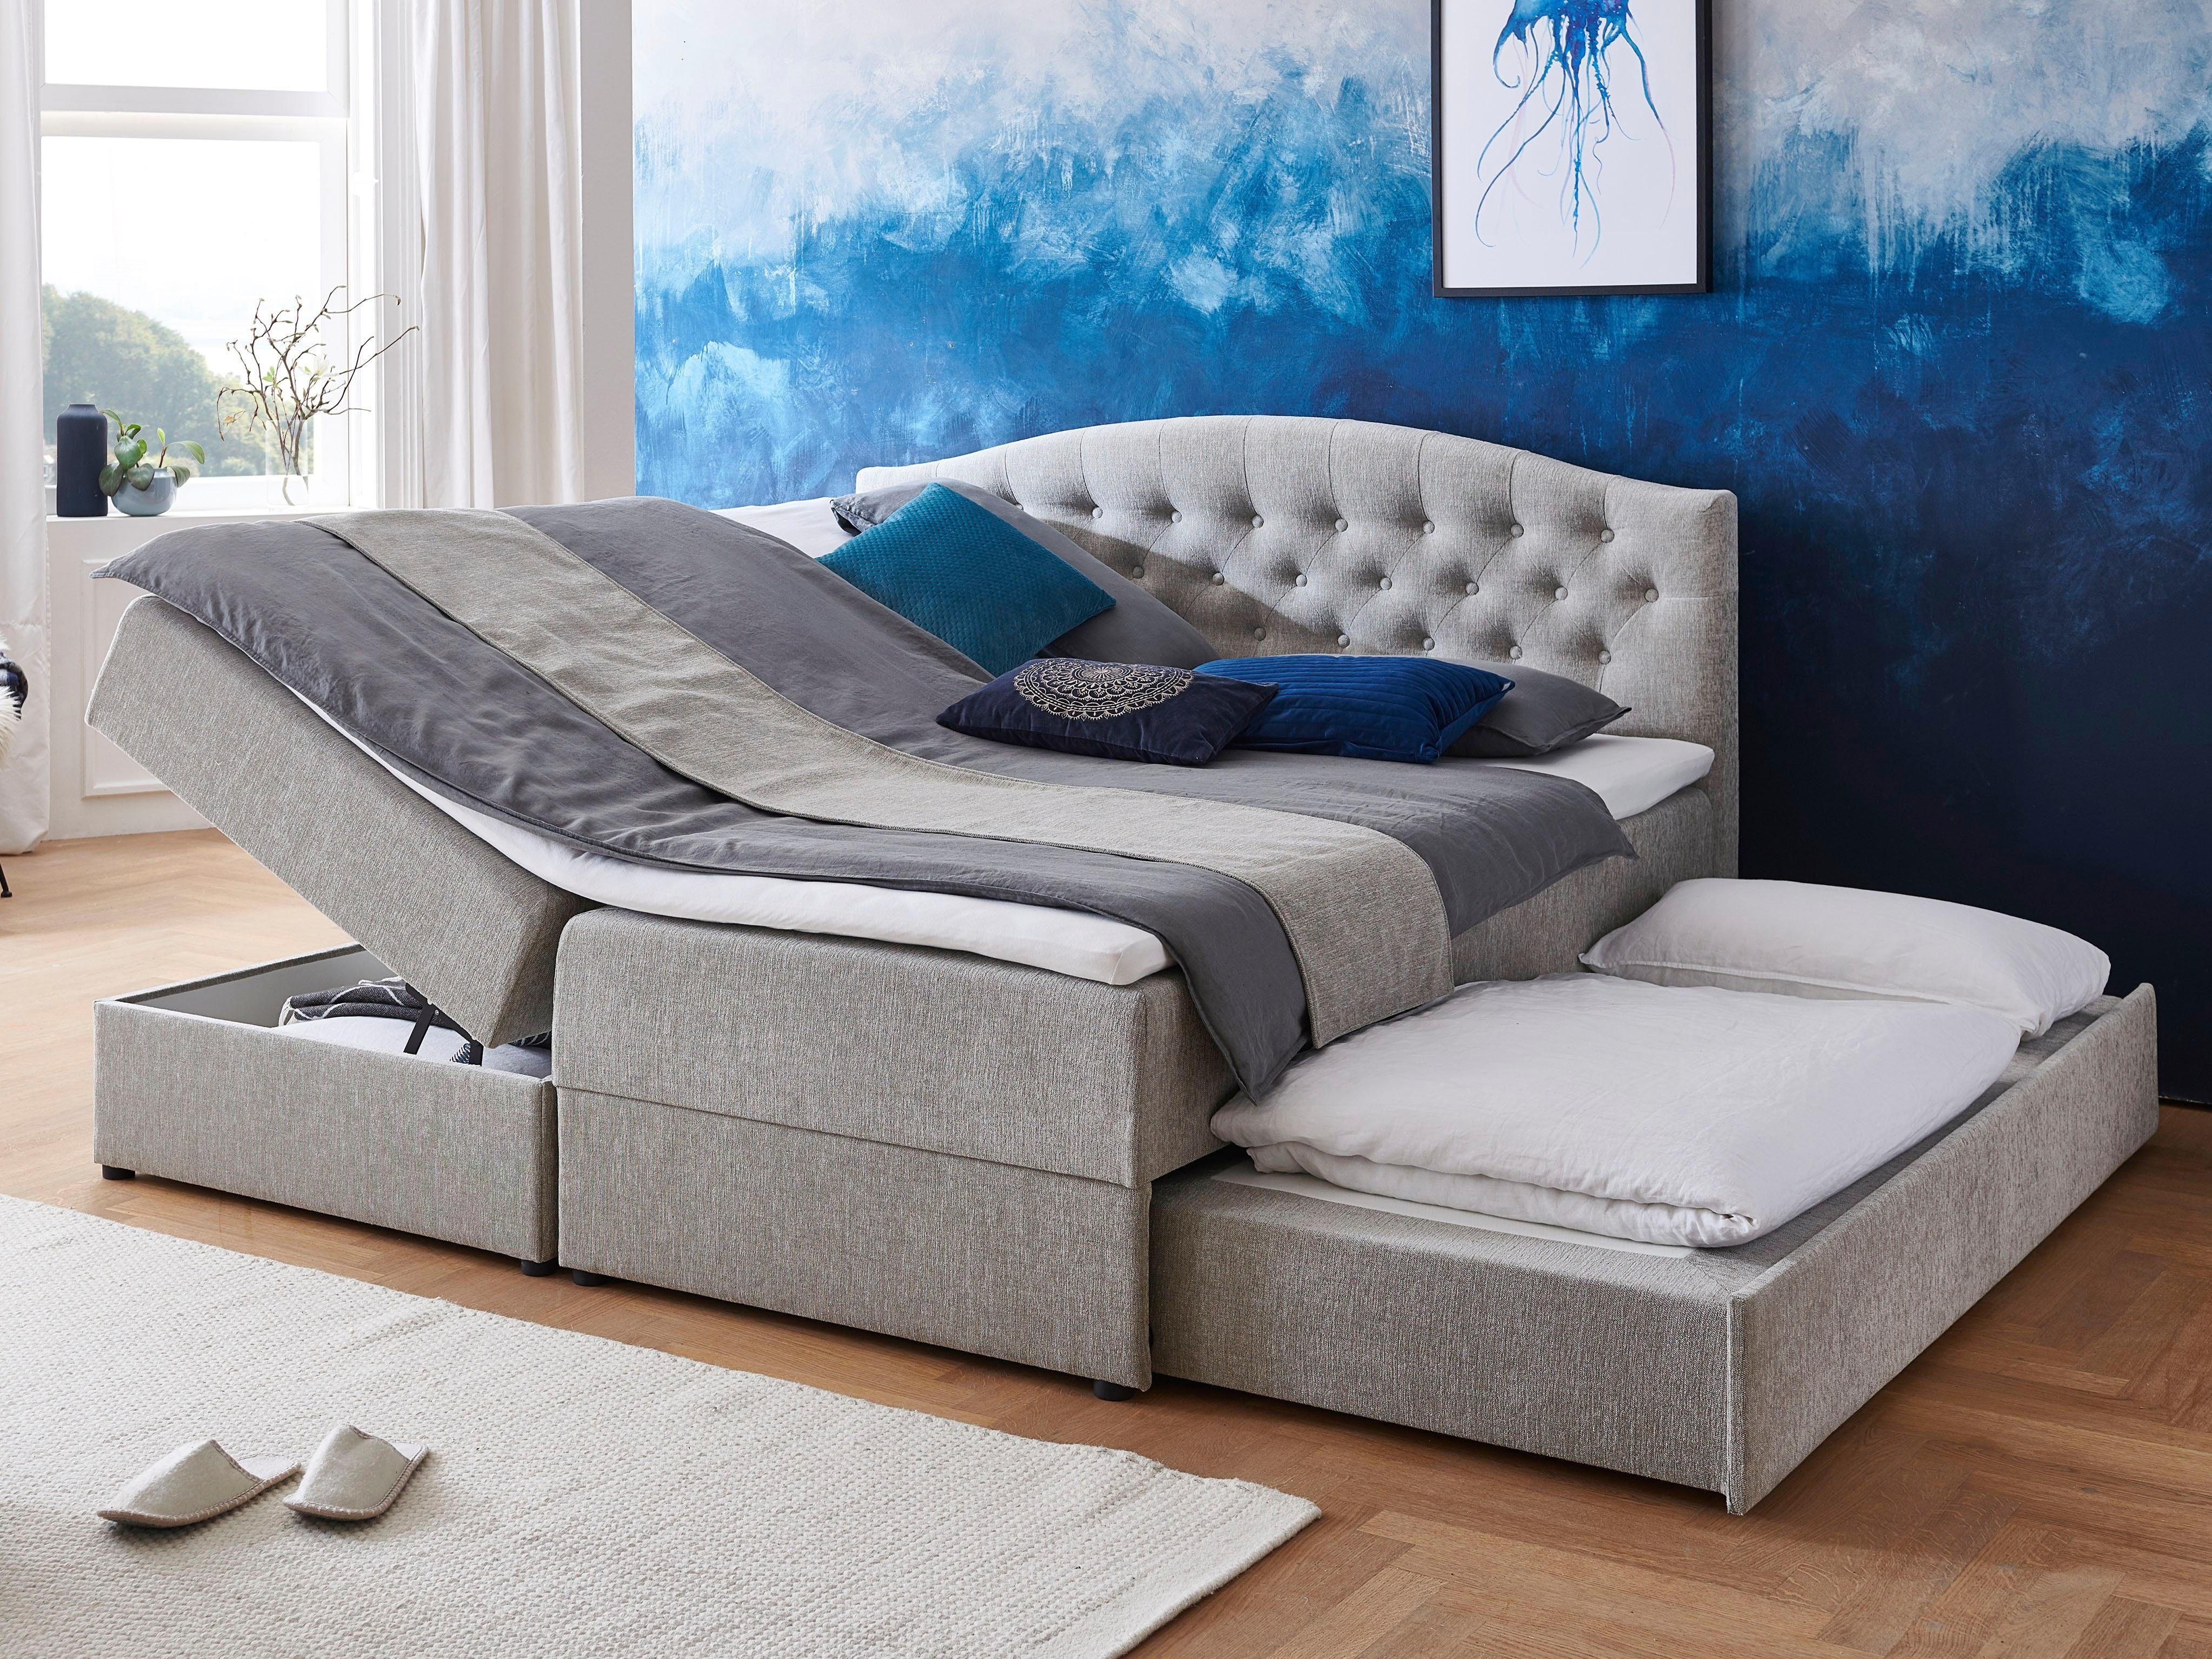 Atlantic Home Collection Boxspringbett Mit Topper